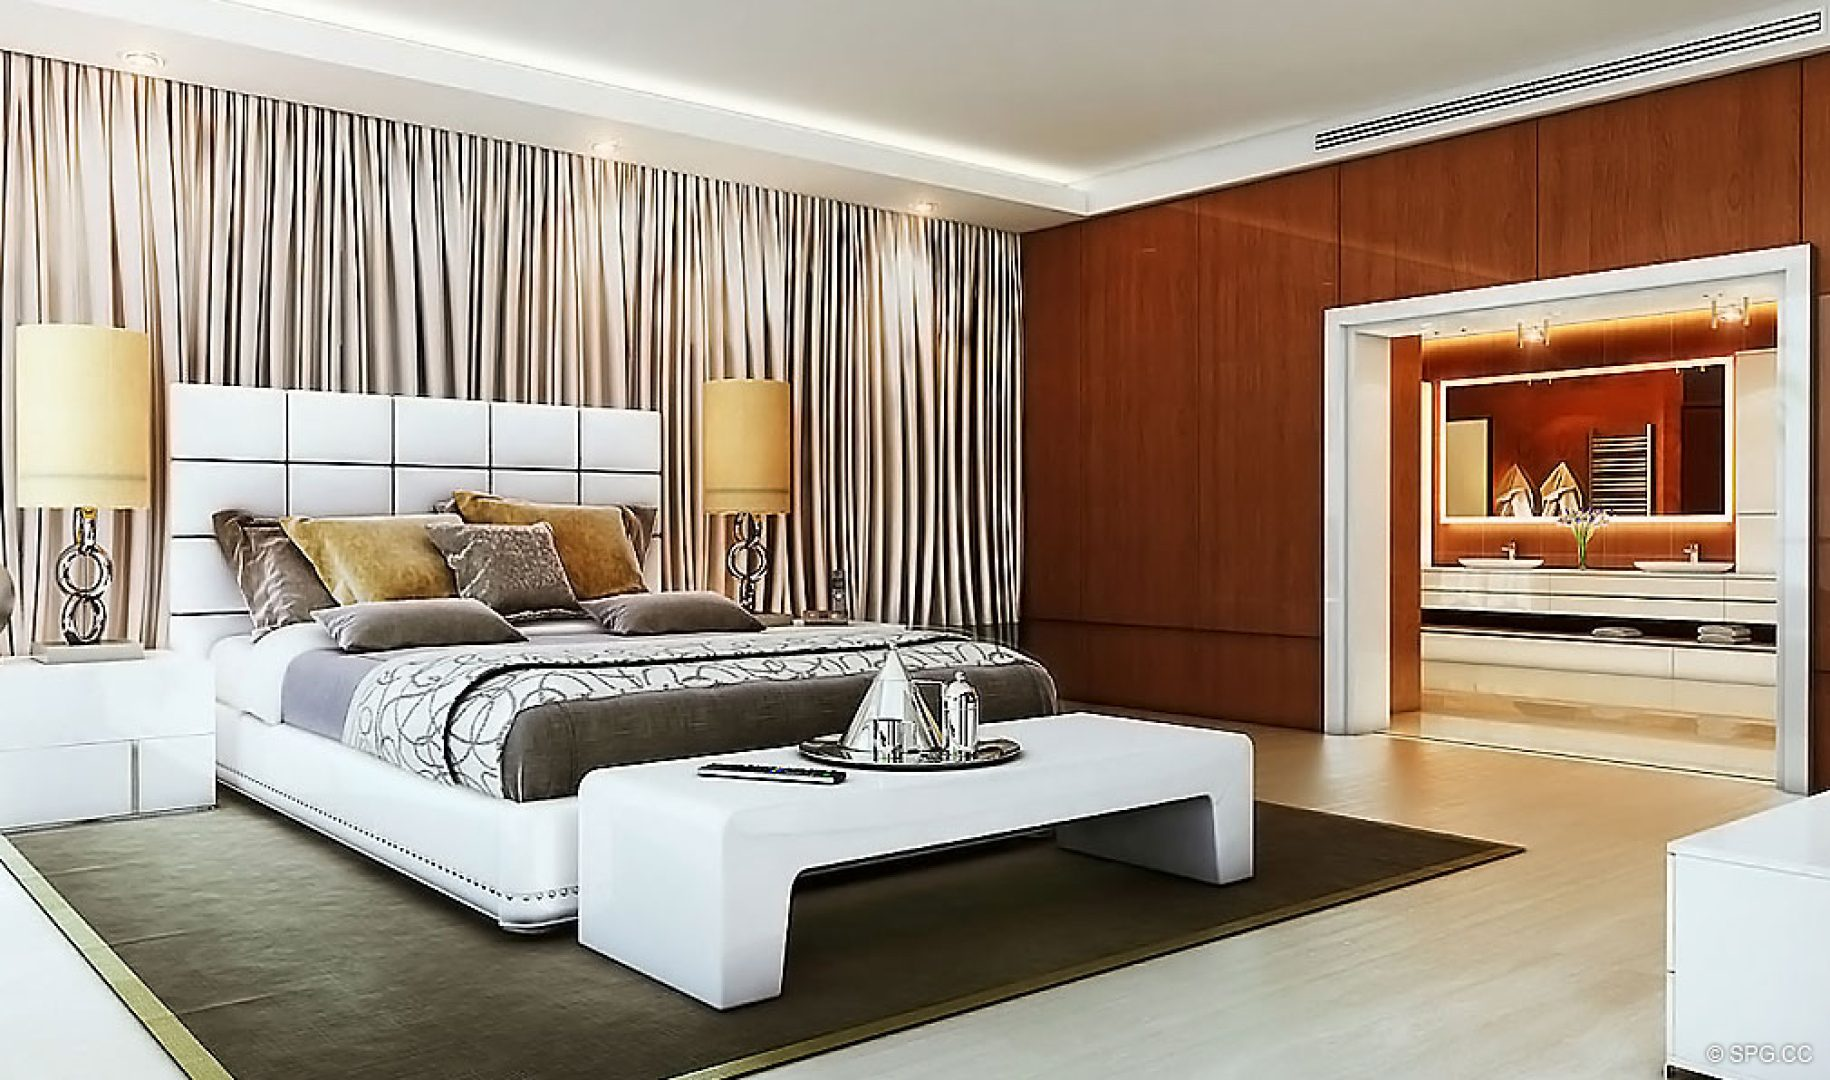 Bedroom Design at AquaLuna Las Olas, Luxury Waterfront Condos in Fort Lauderdale, Florida 33301